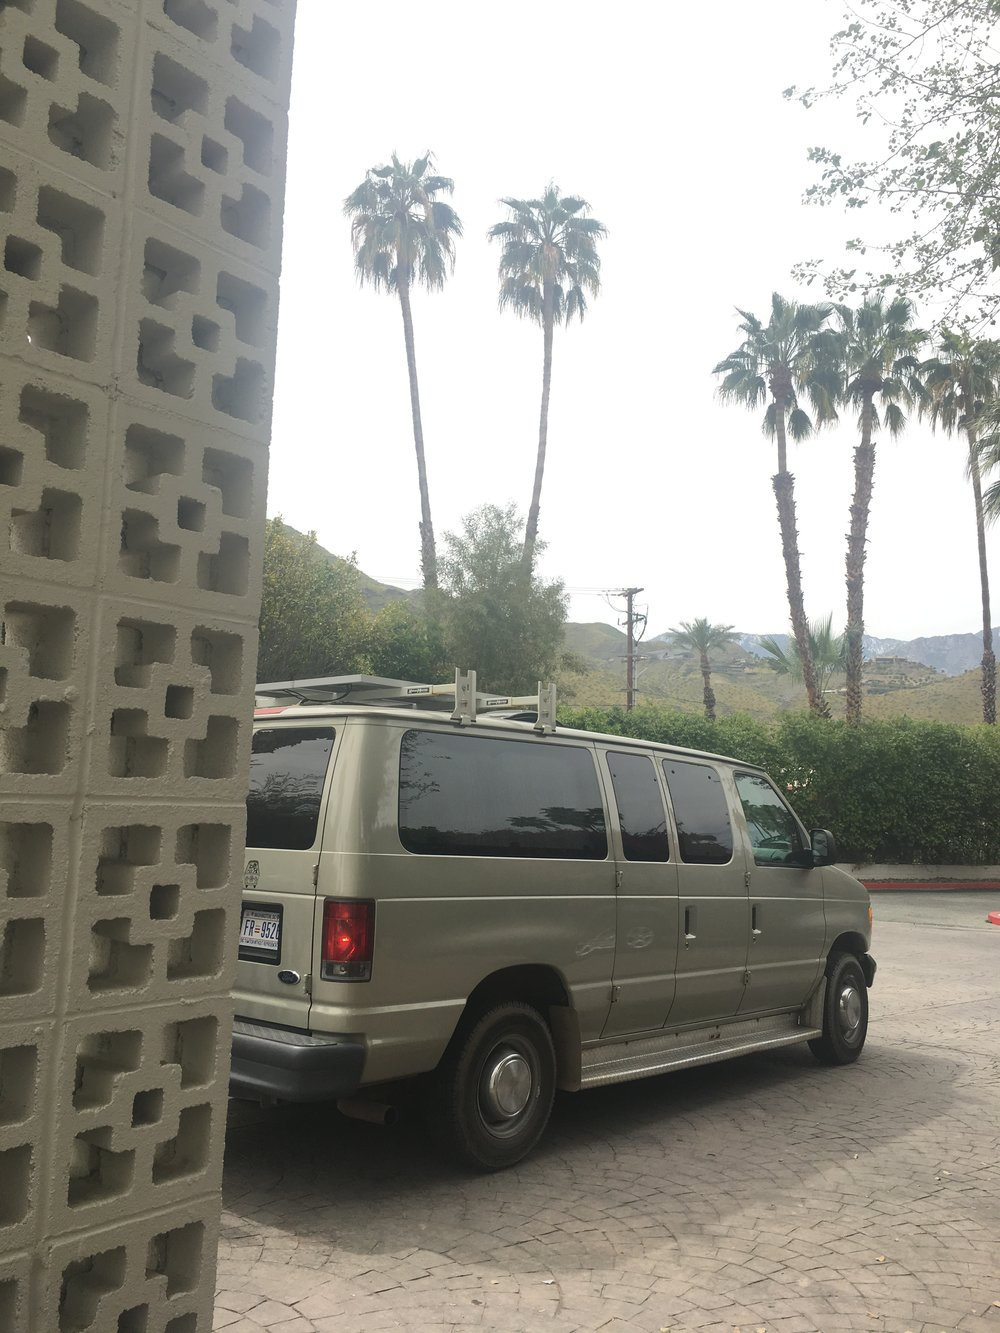 Valerie's  Van dropping me off at The Parker, Palm Springs